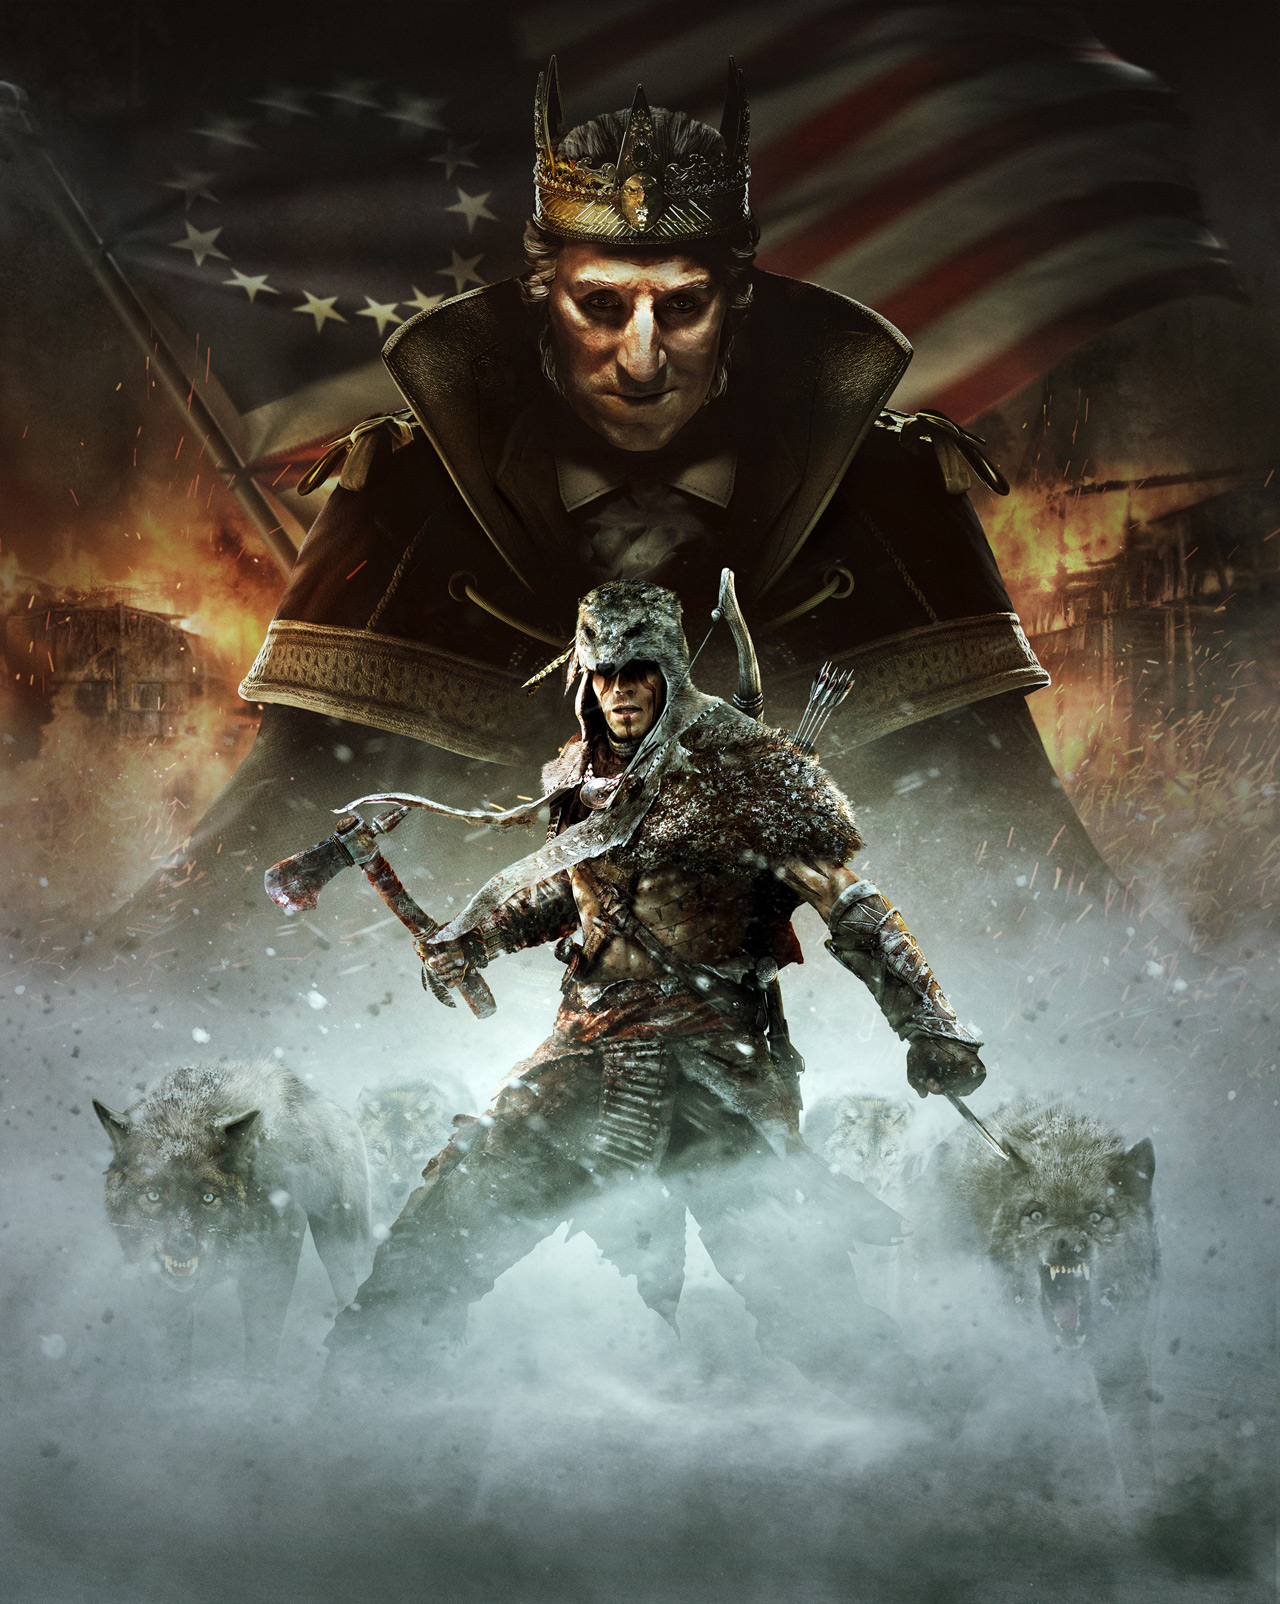 Assassin's Creed III 'Tyranny of King Washington: The Infamy' DLC release date set